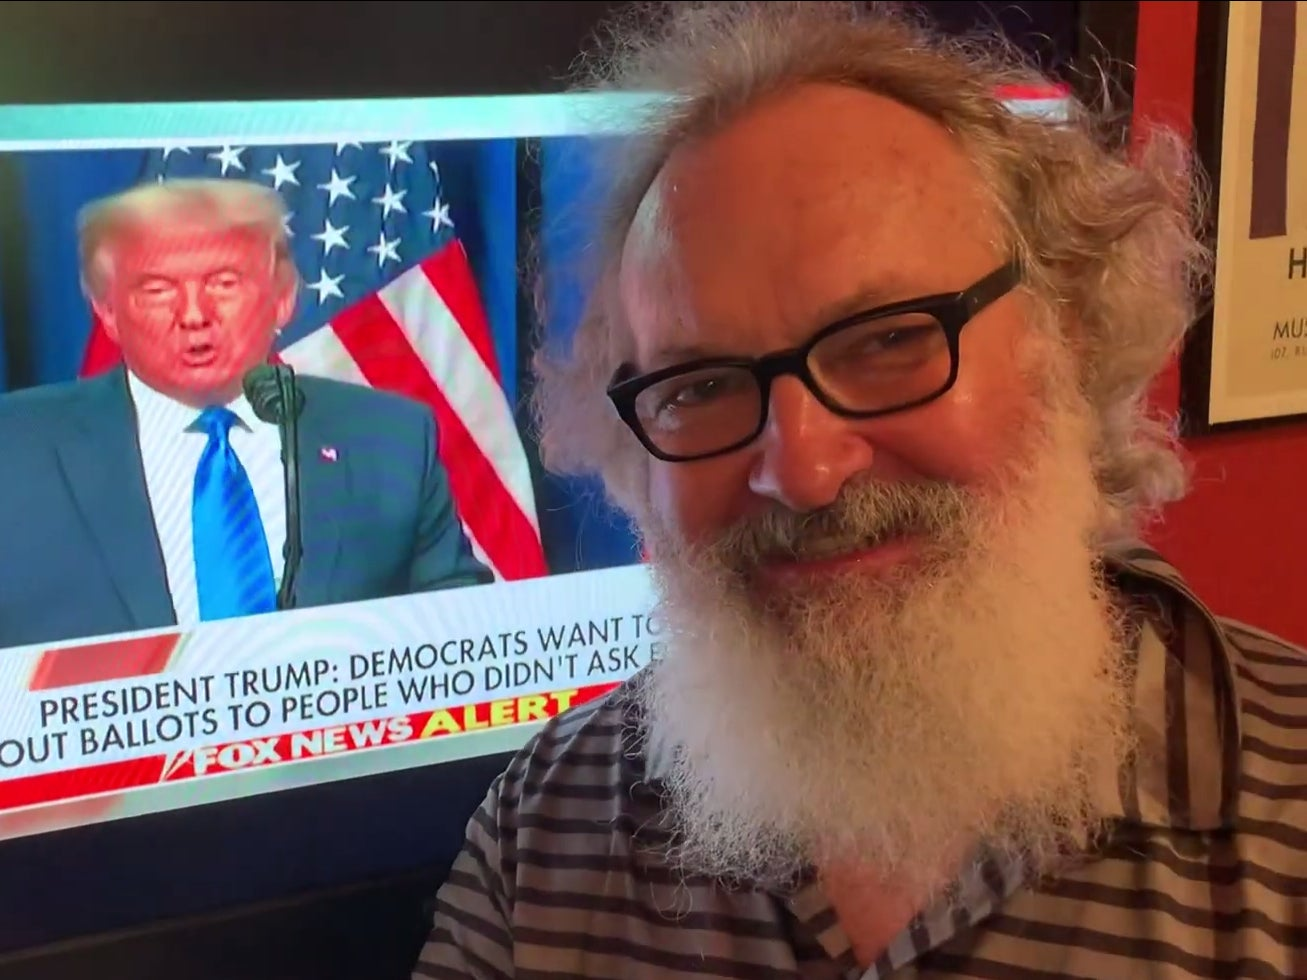 Why Randy Quaid's bizarre poem moved Trump so much